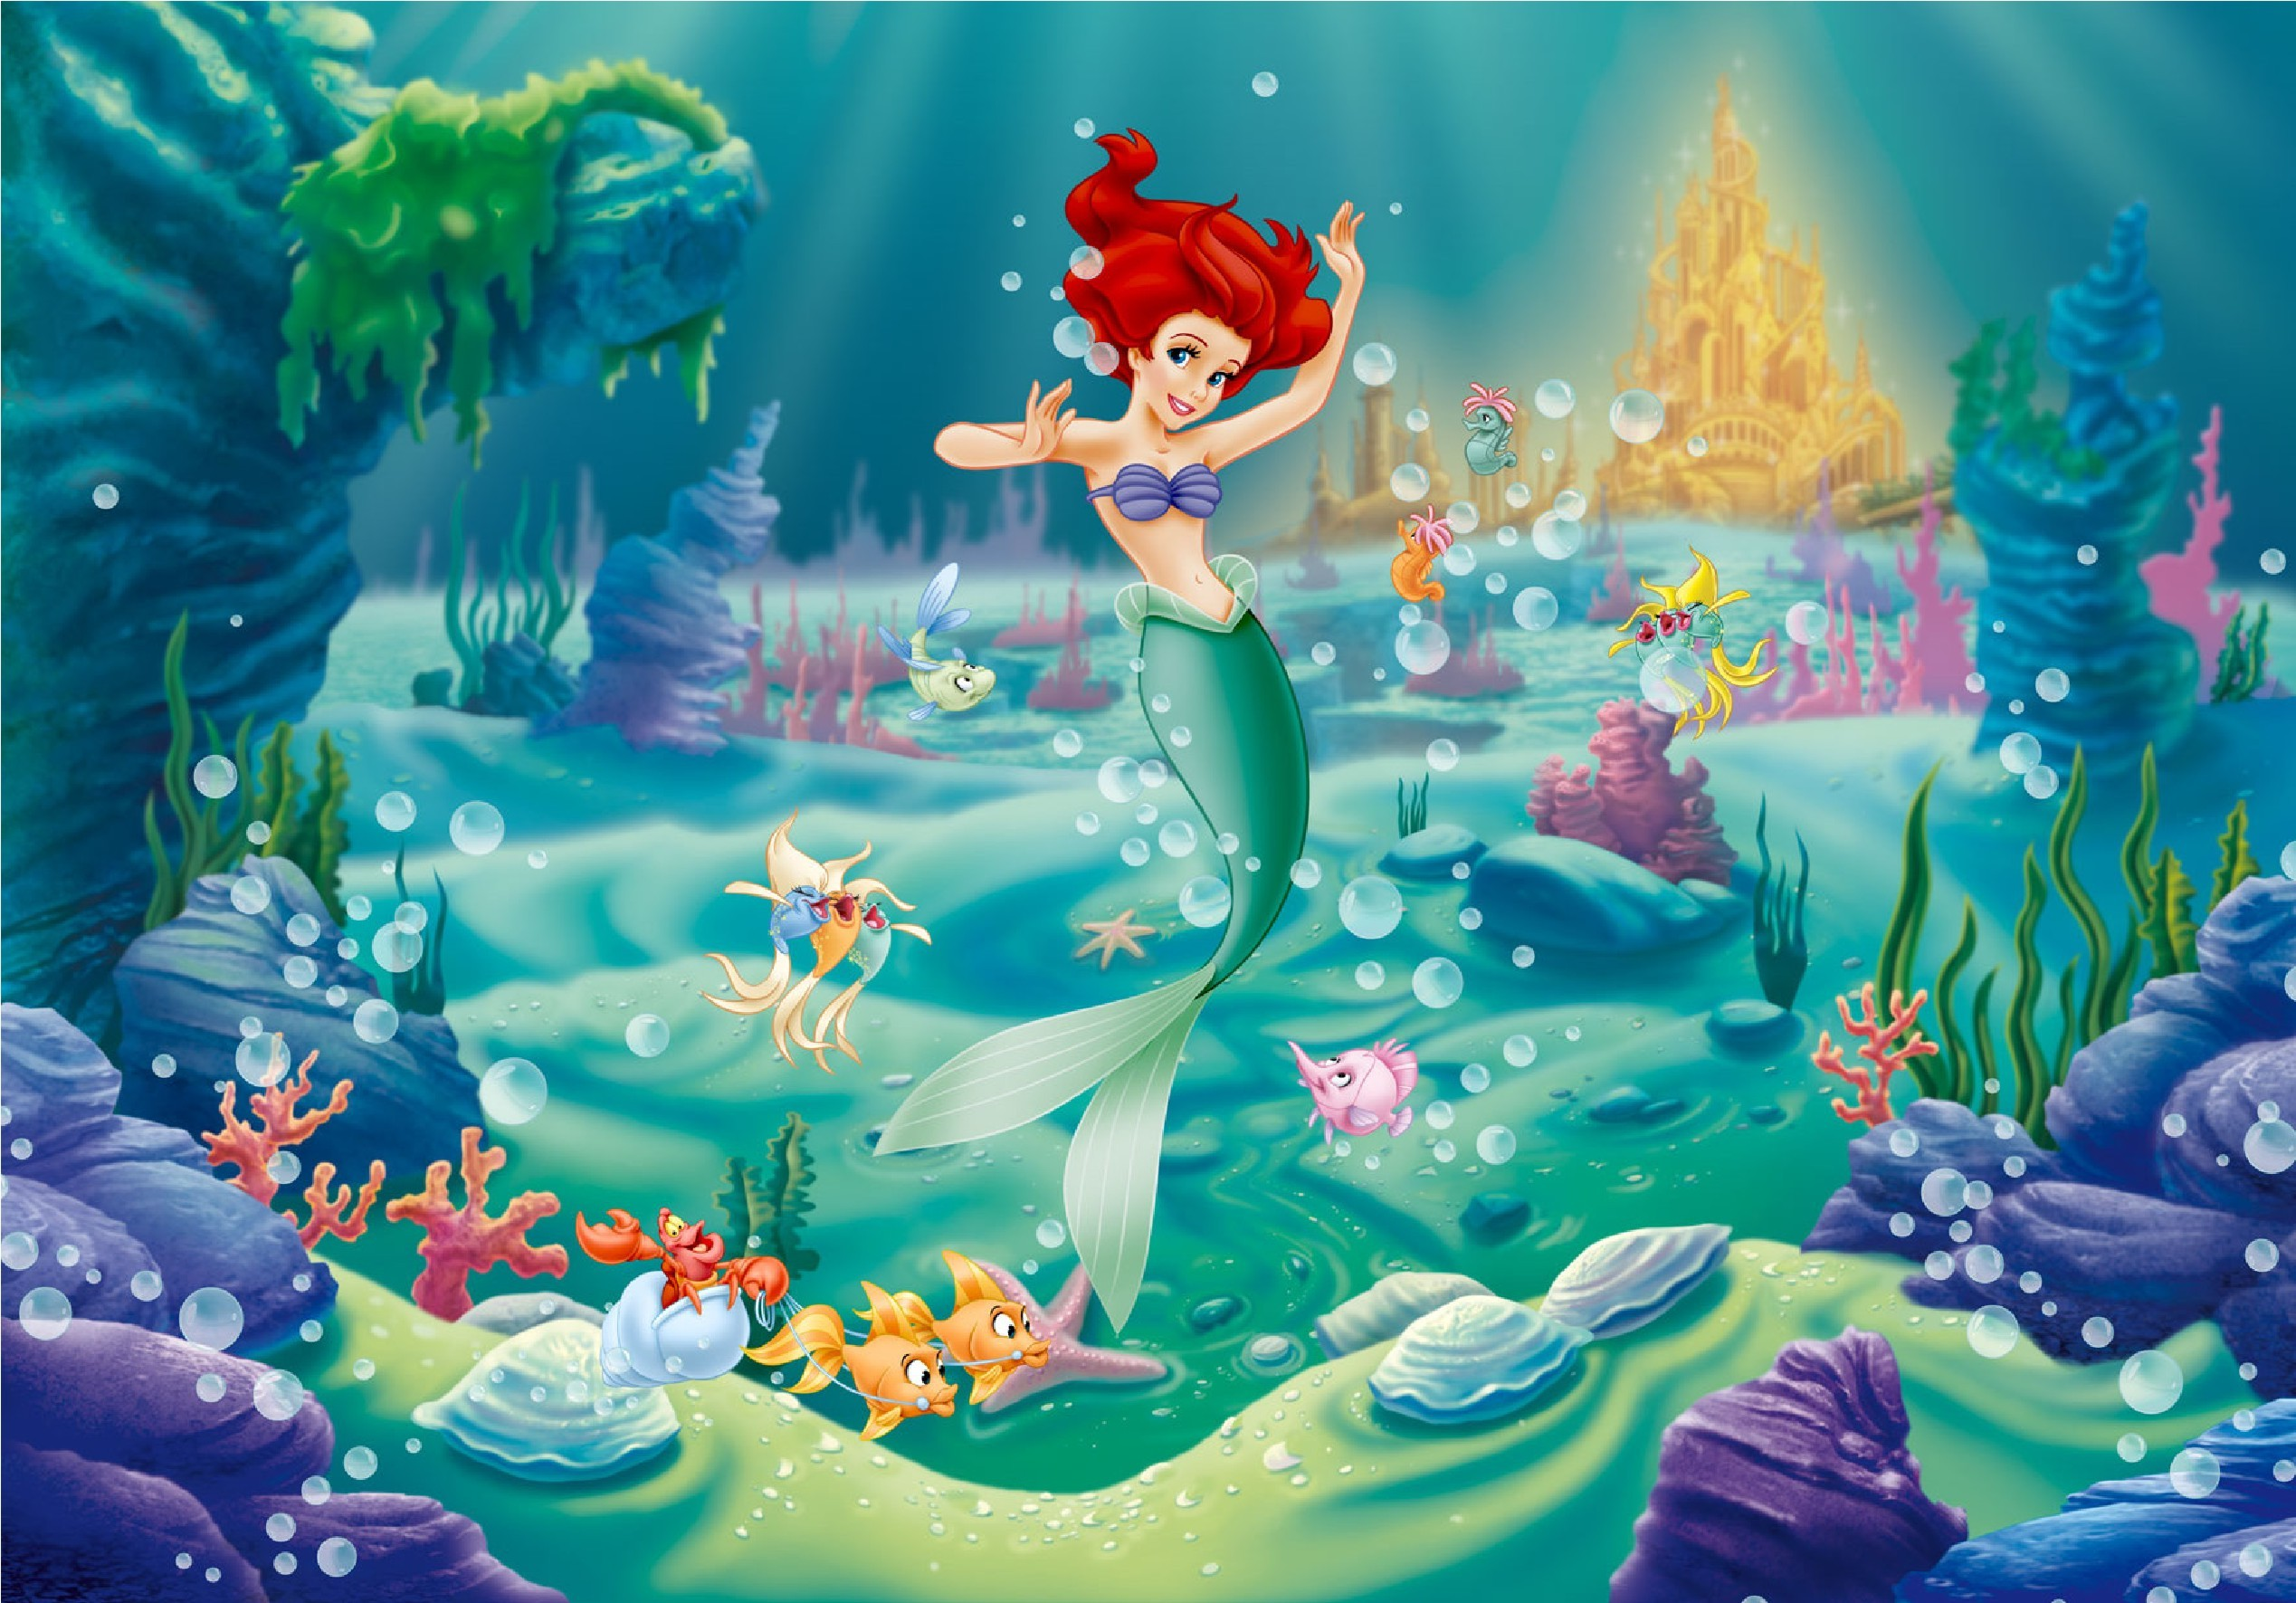 Little Mermaid Wallpaper Download Free Cool Hd Wallpapers For